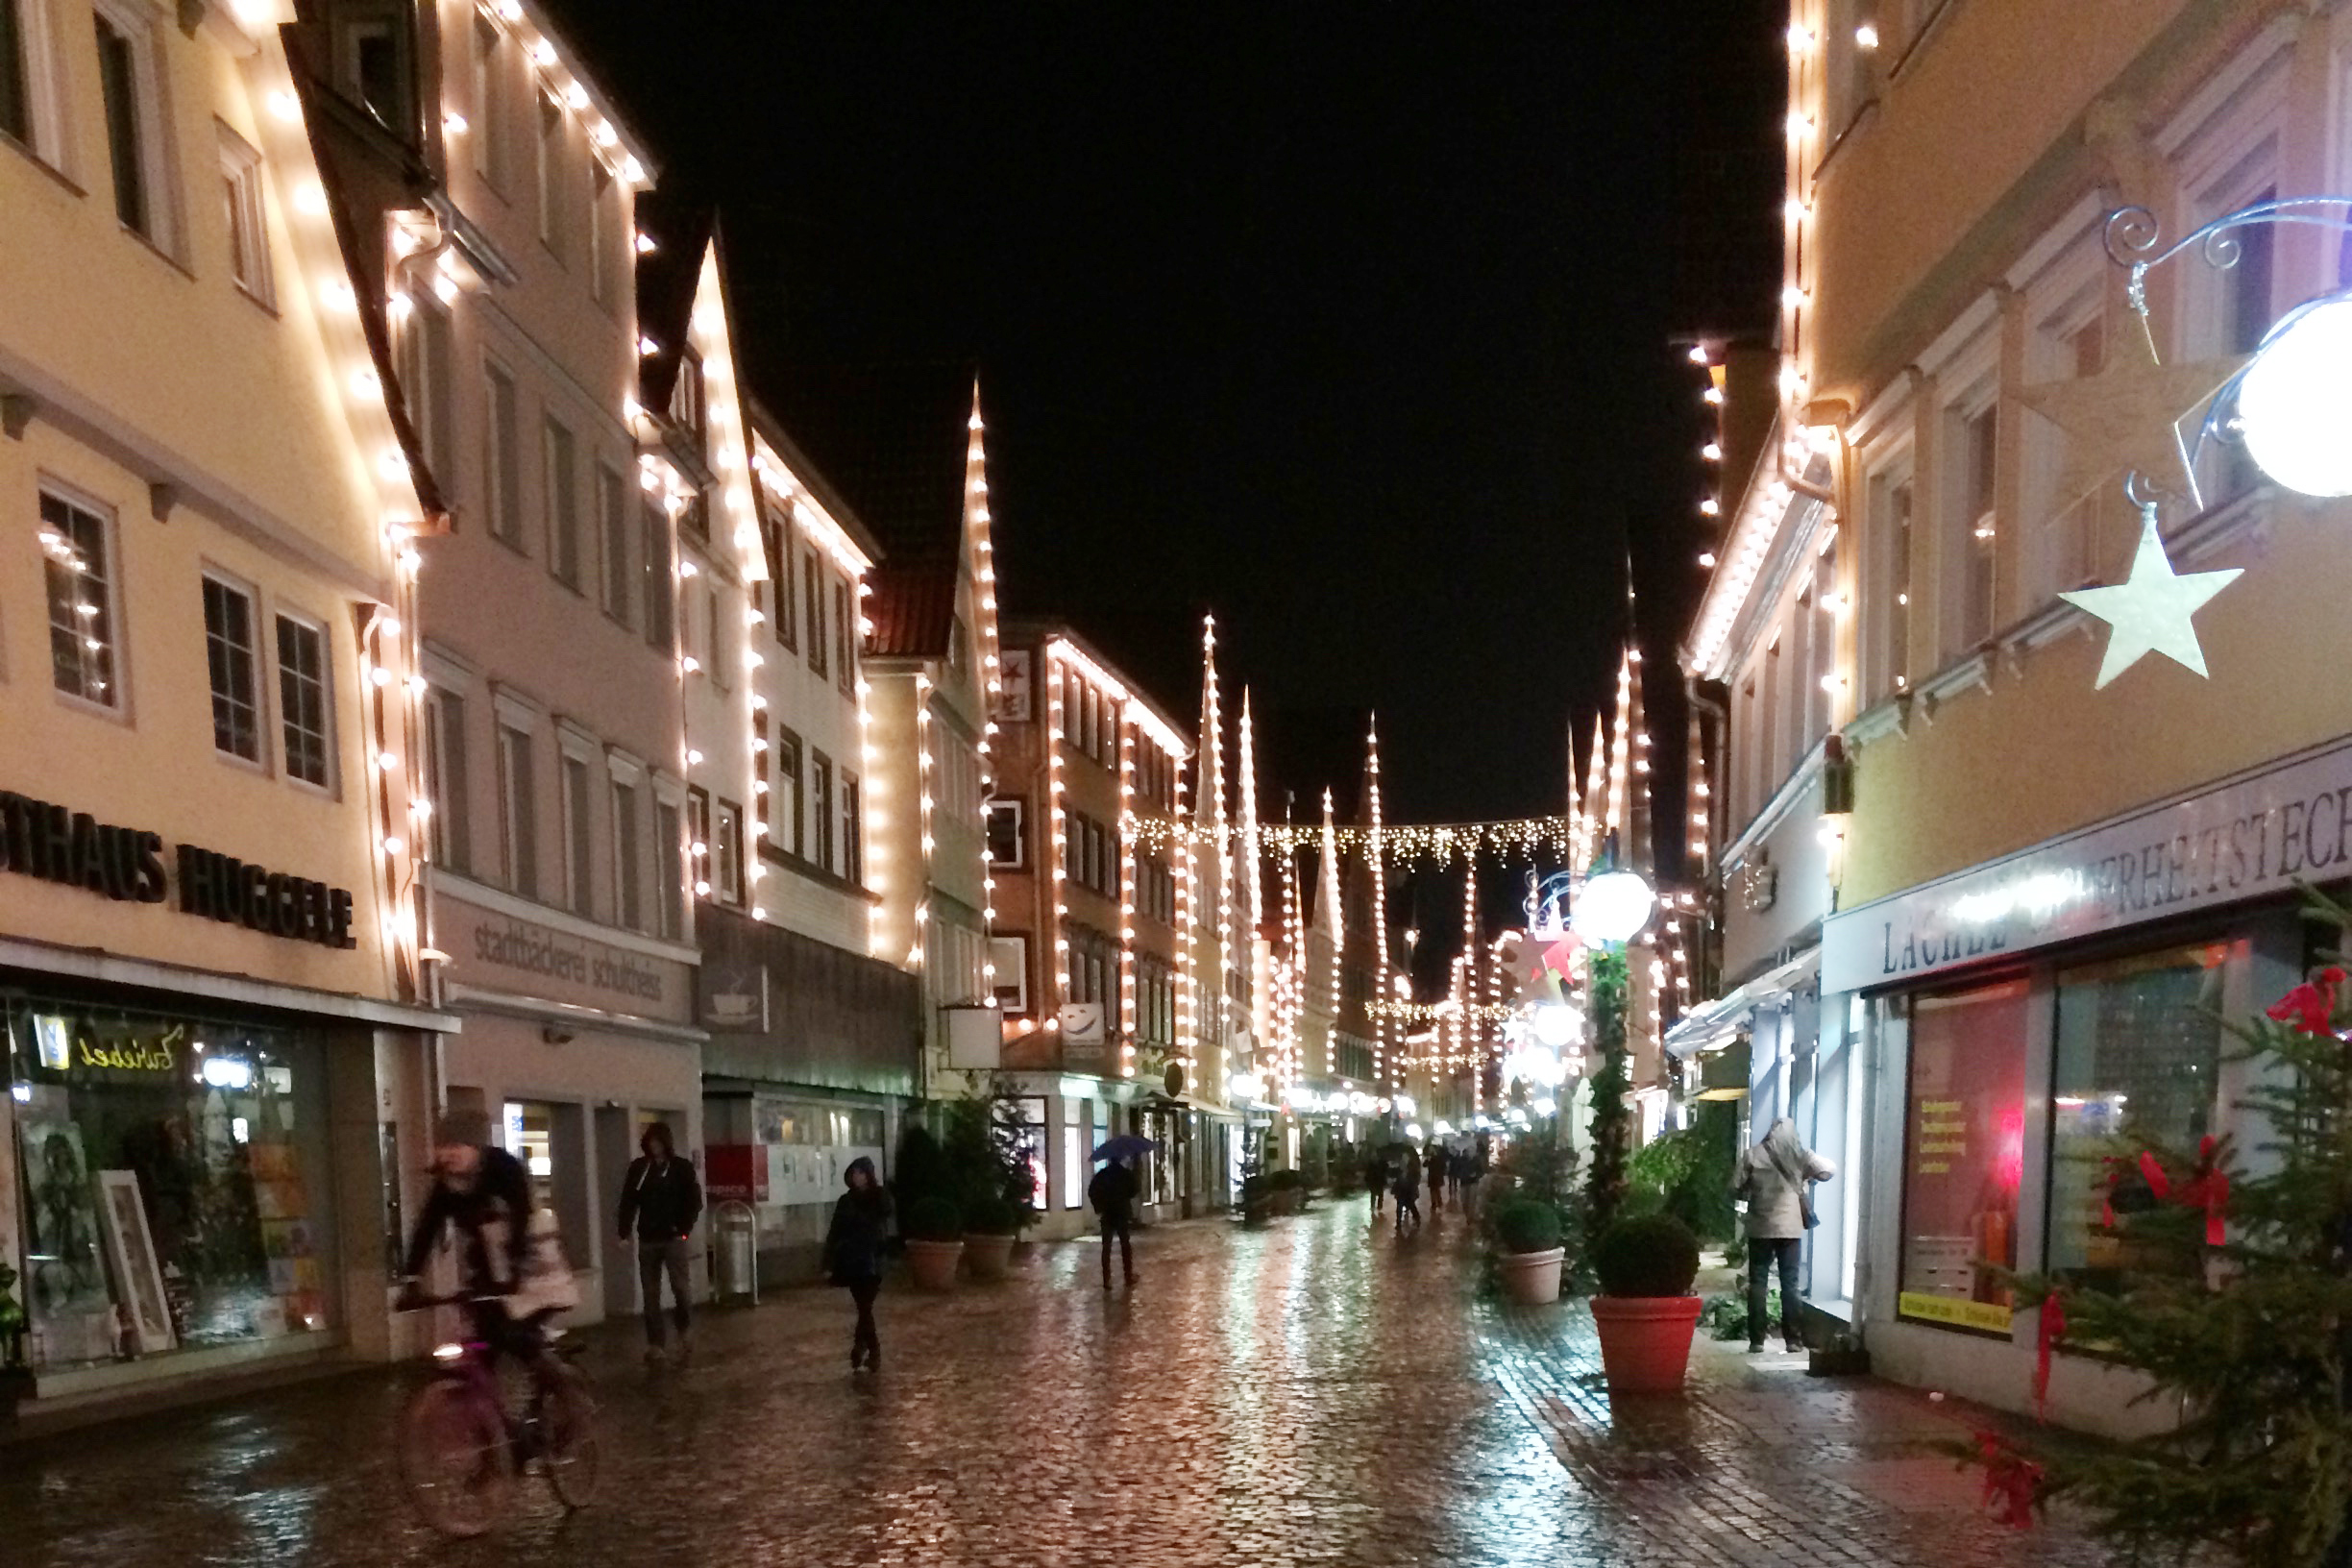 The pretty villageroad leading to the Christmas market.